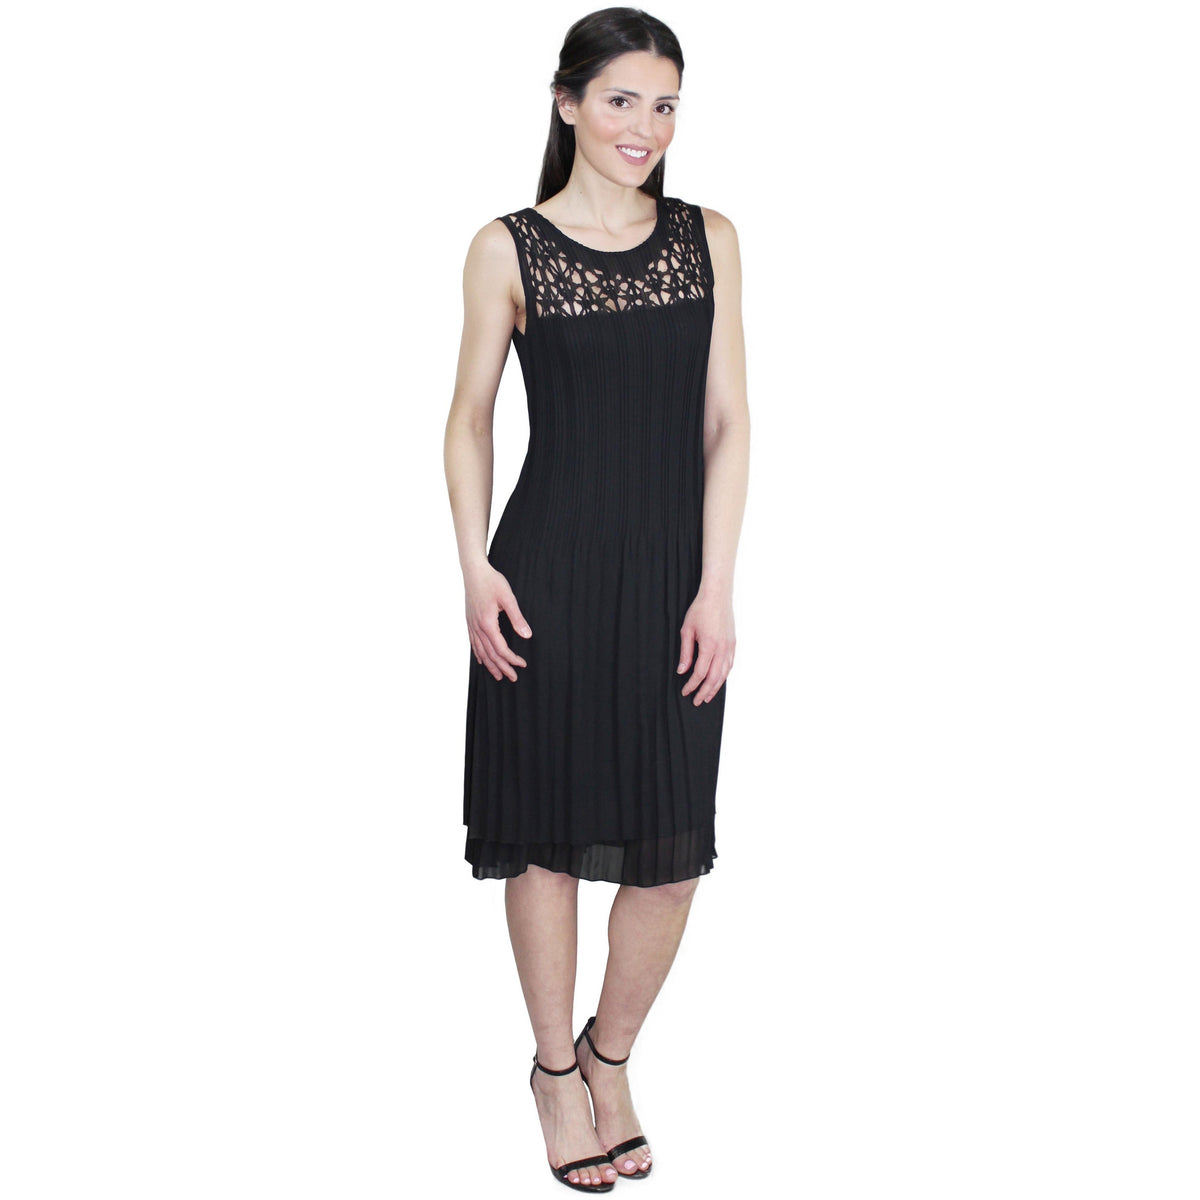 Star Laser Cut Crinkle Dress - Black